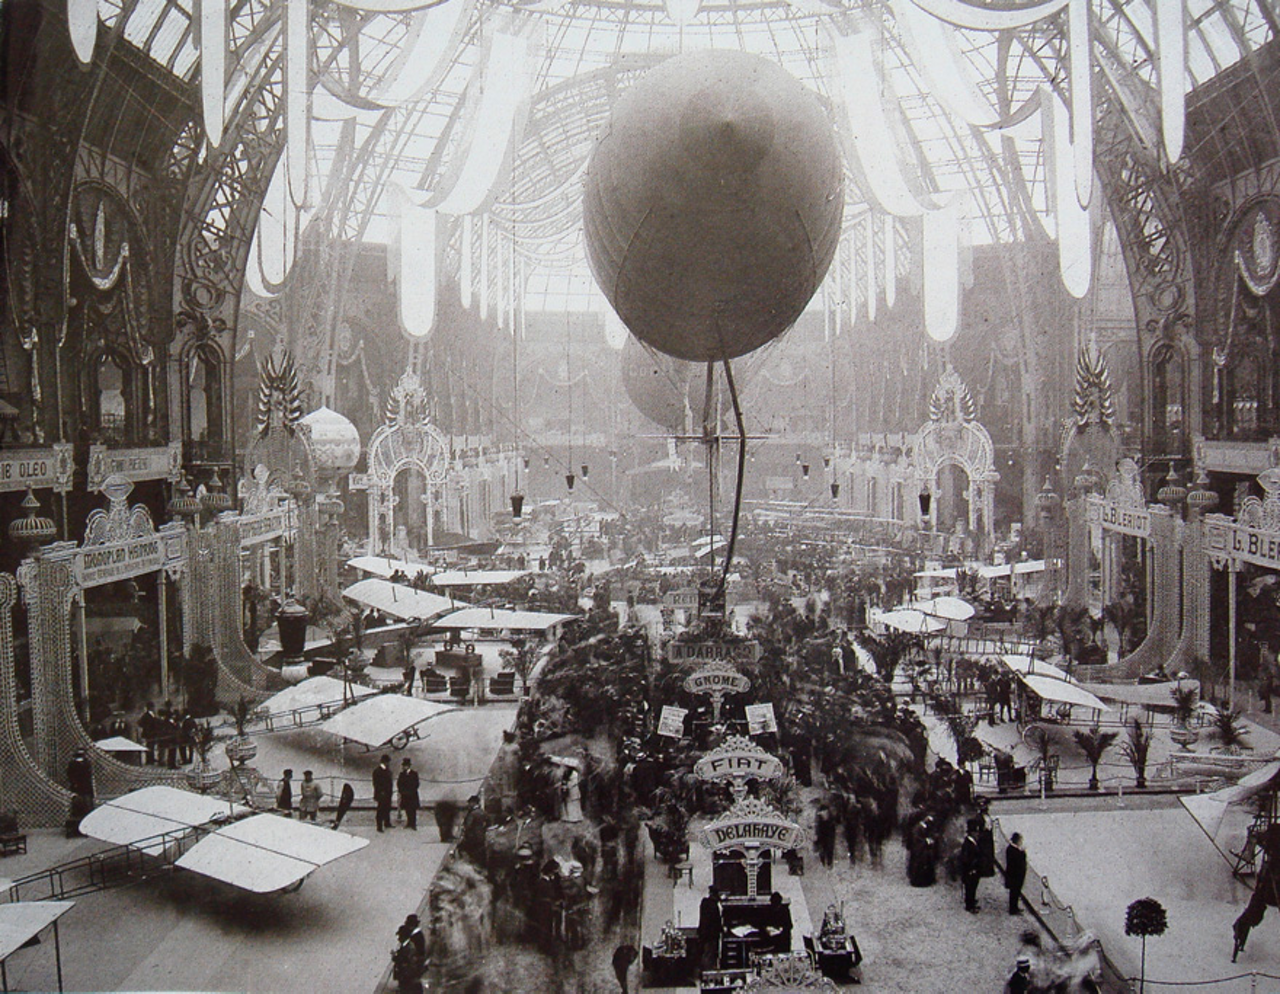 The Paris Air Show, the world's oldest, first opened its doors in 1909. It has held at the Grand Palais in Paris.